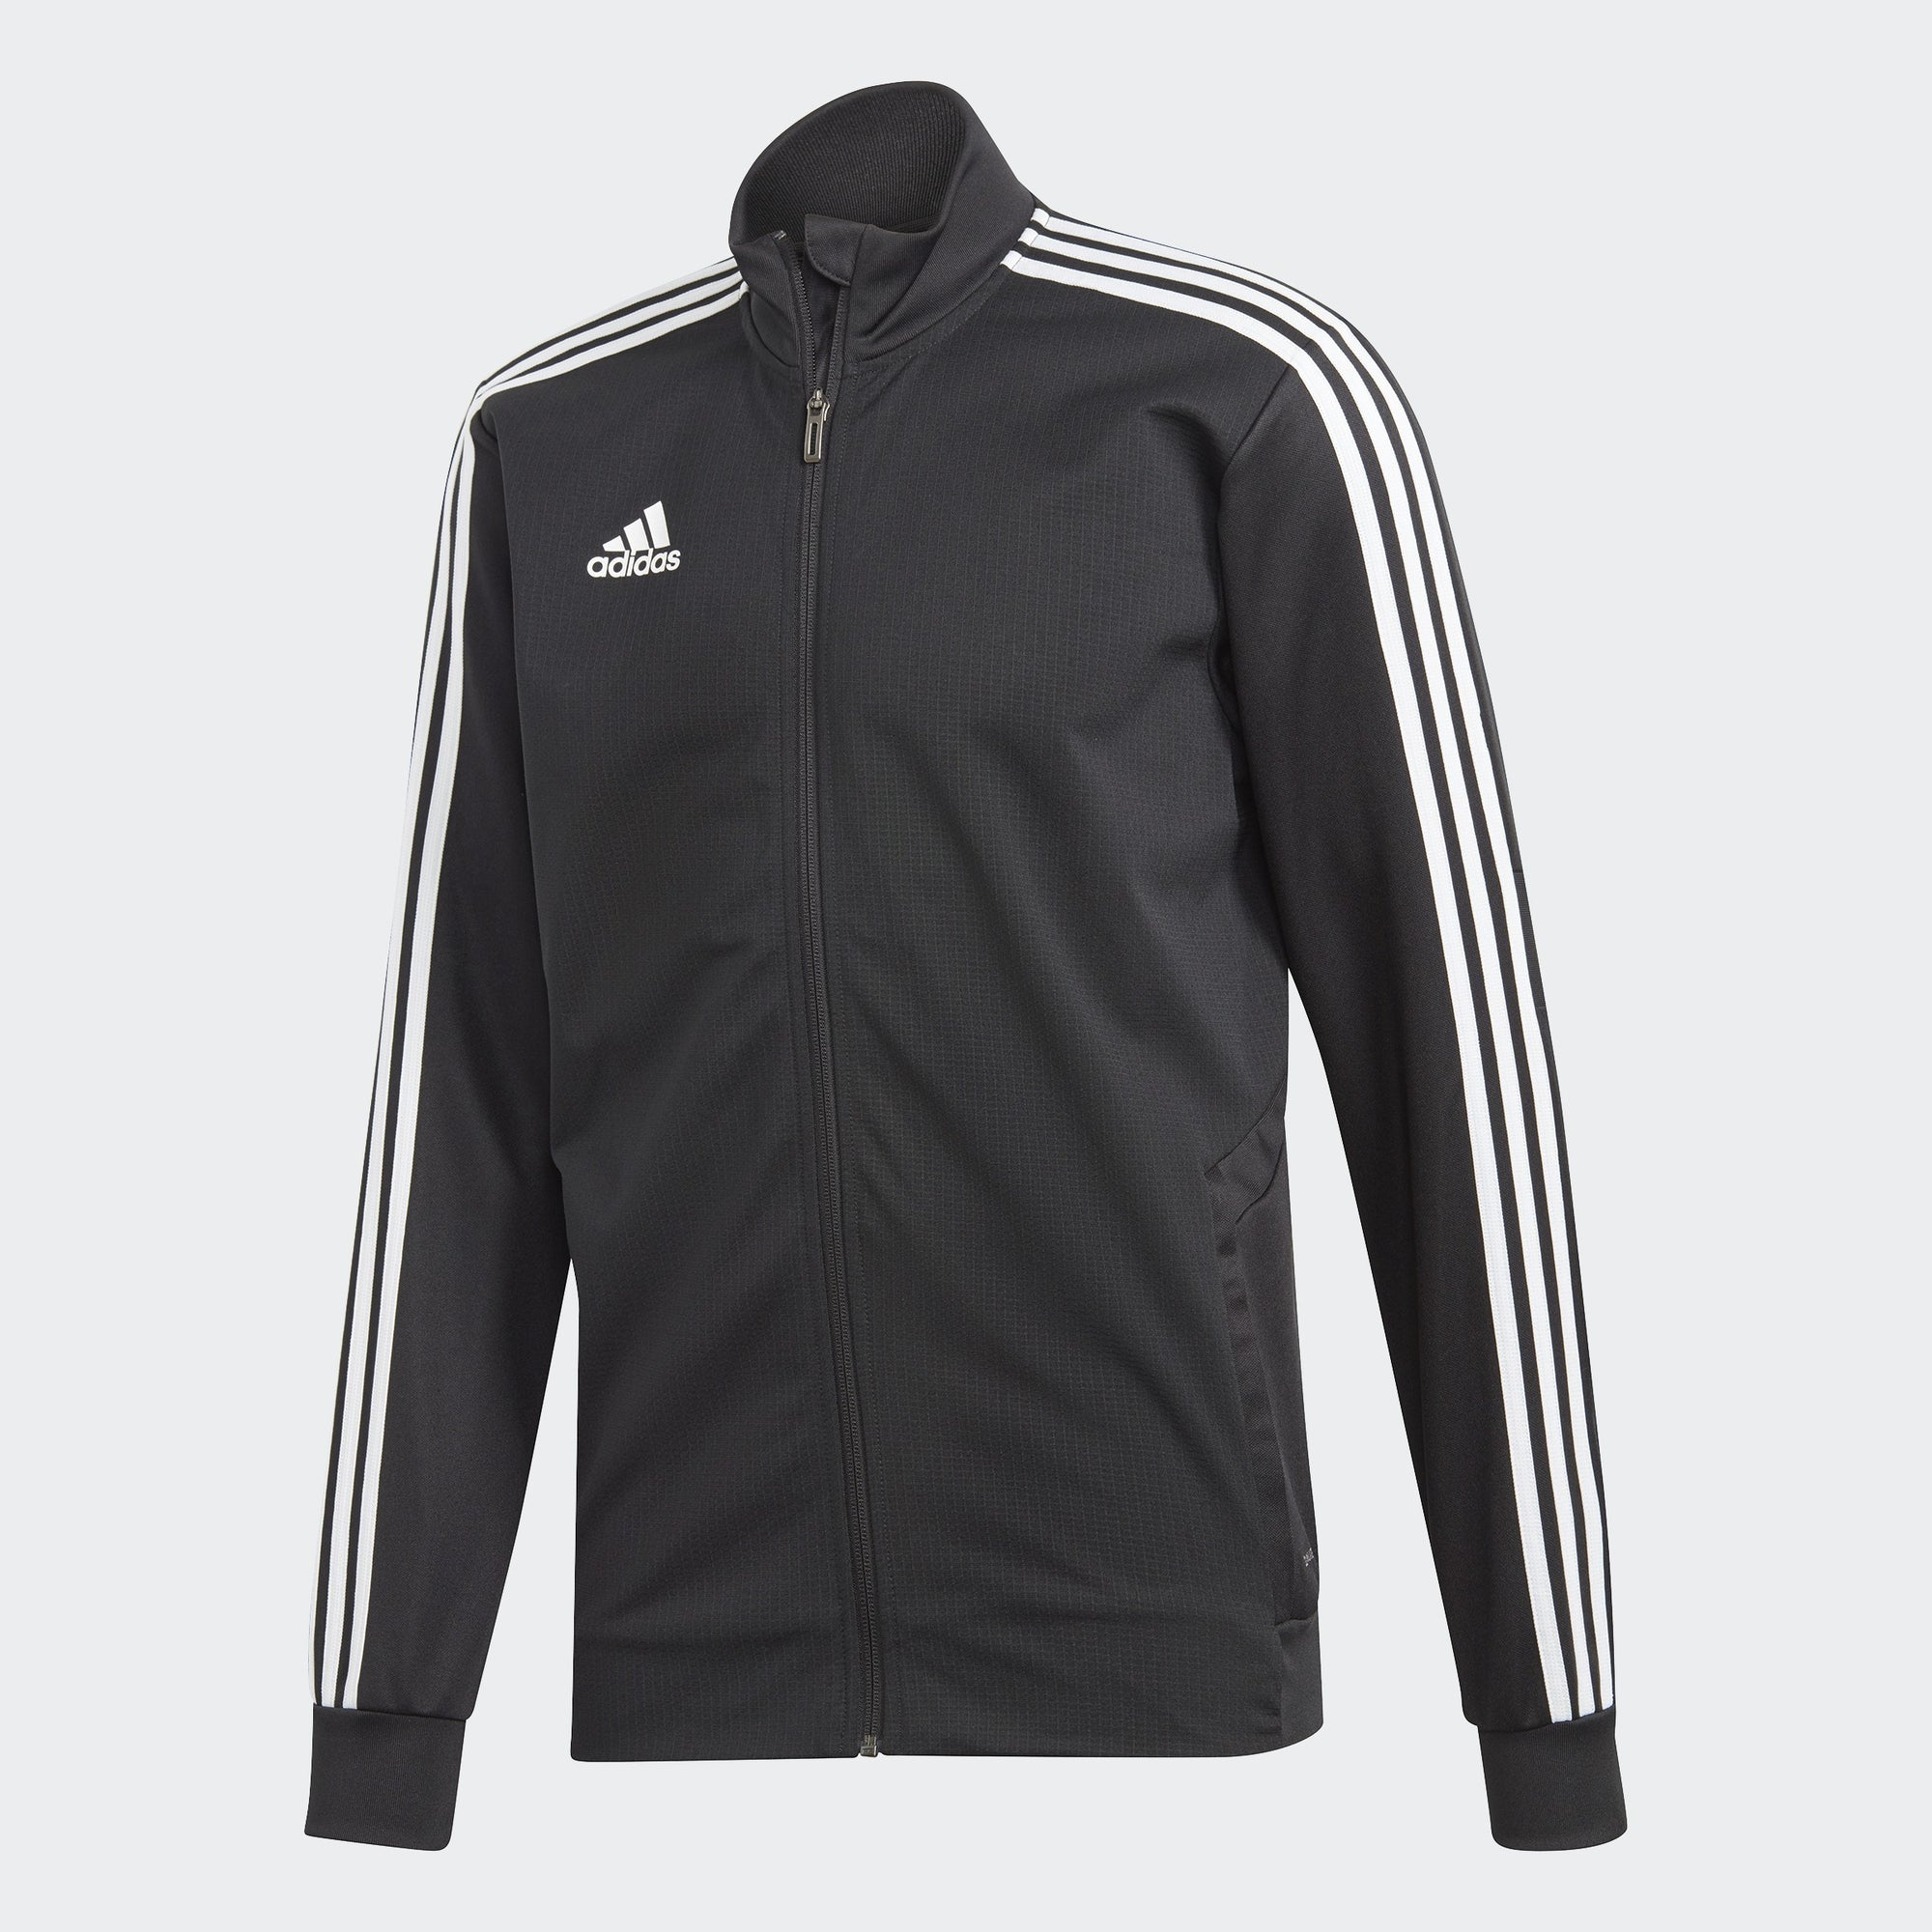 Men's Tiro 19 Training Jacket - Black/White